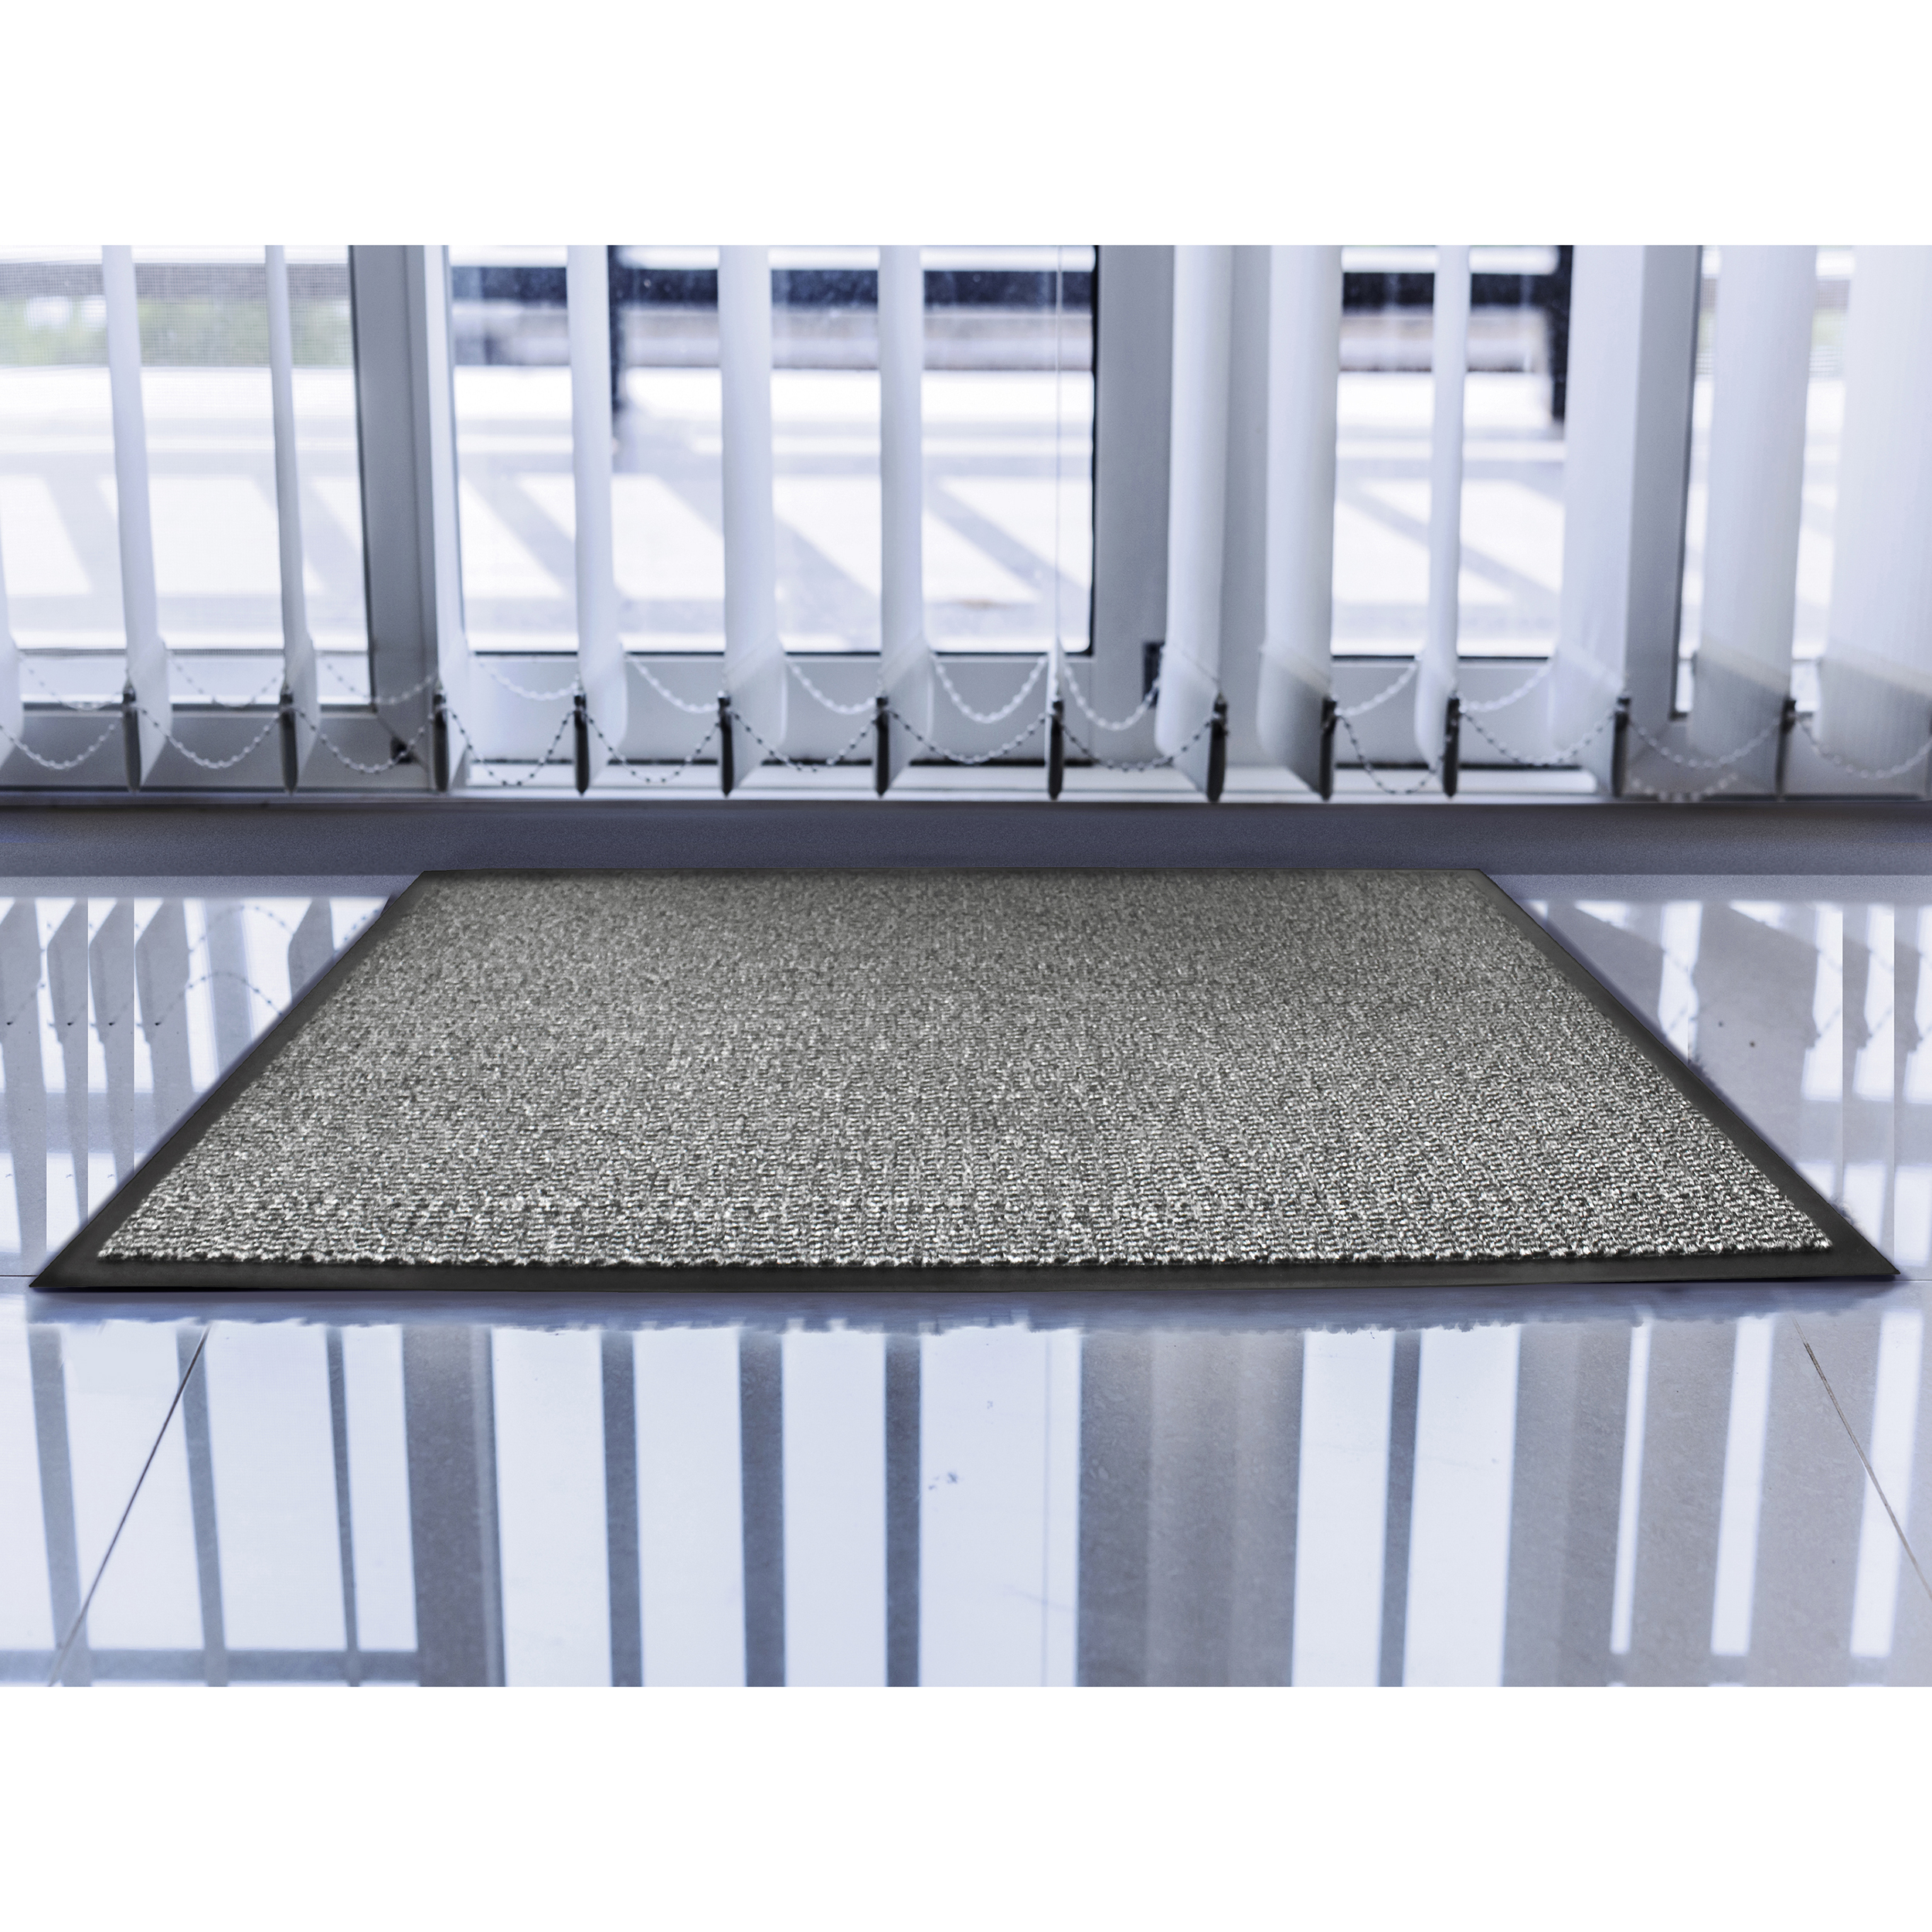 Door mats Doortex Advantagemat Door Mat for Dust & Moisture Polypropylene 900x1200mm Anthracite Ref FC49120DCBWV